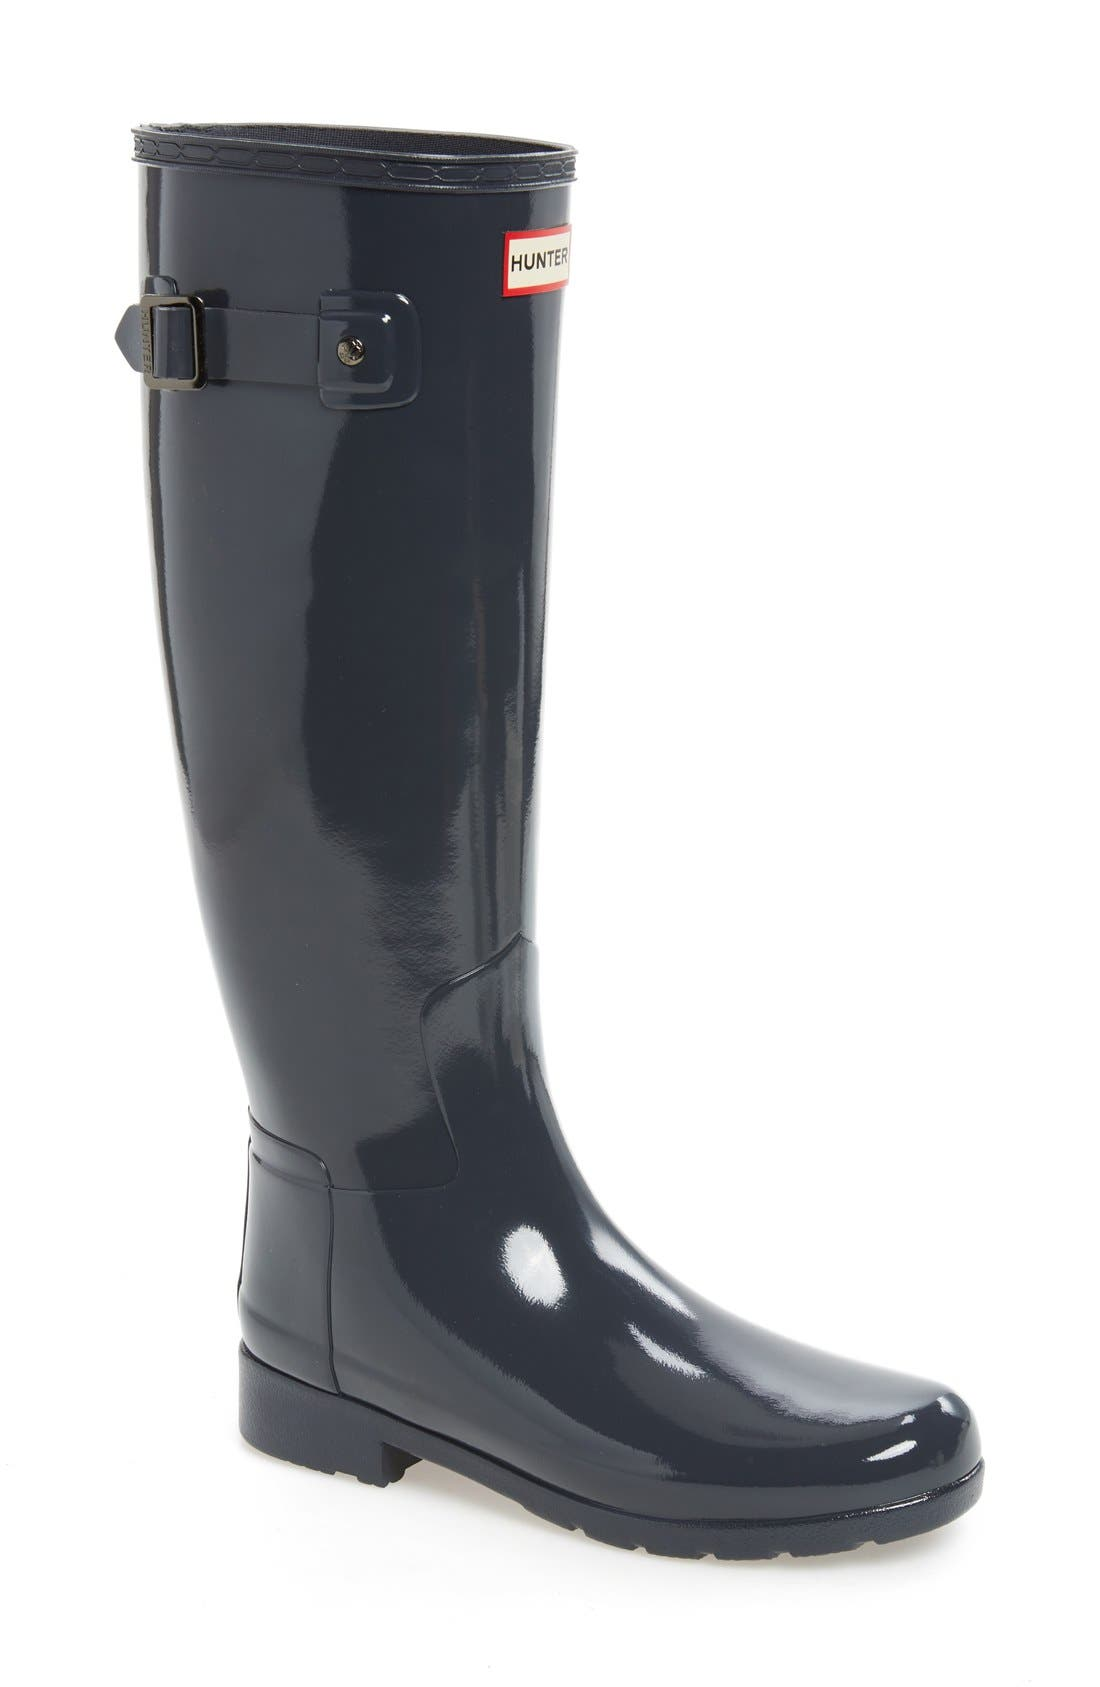 Main Image - Hunter 'Original Refined' High Gloss Rain Boot (Women)